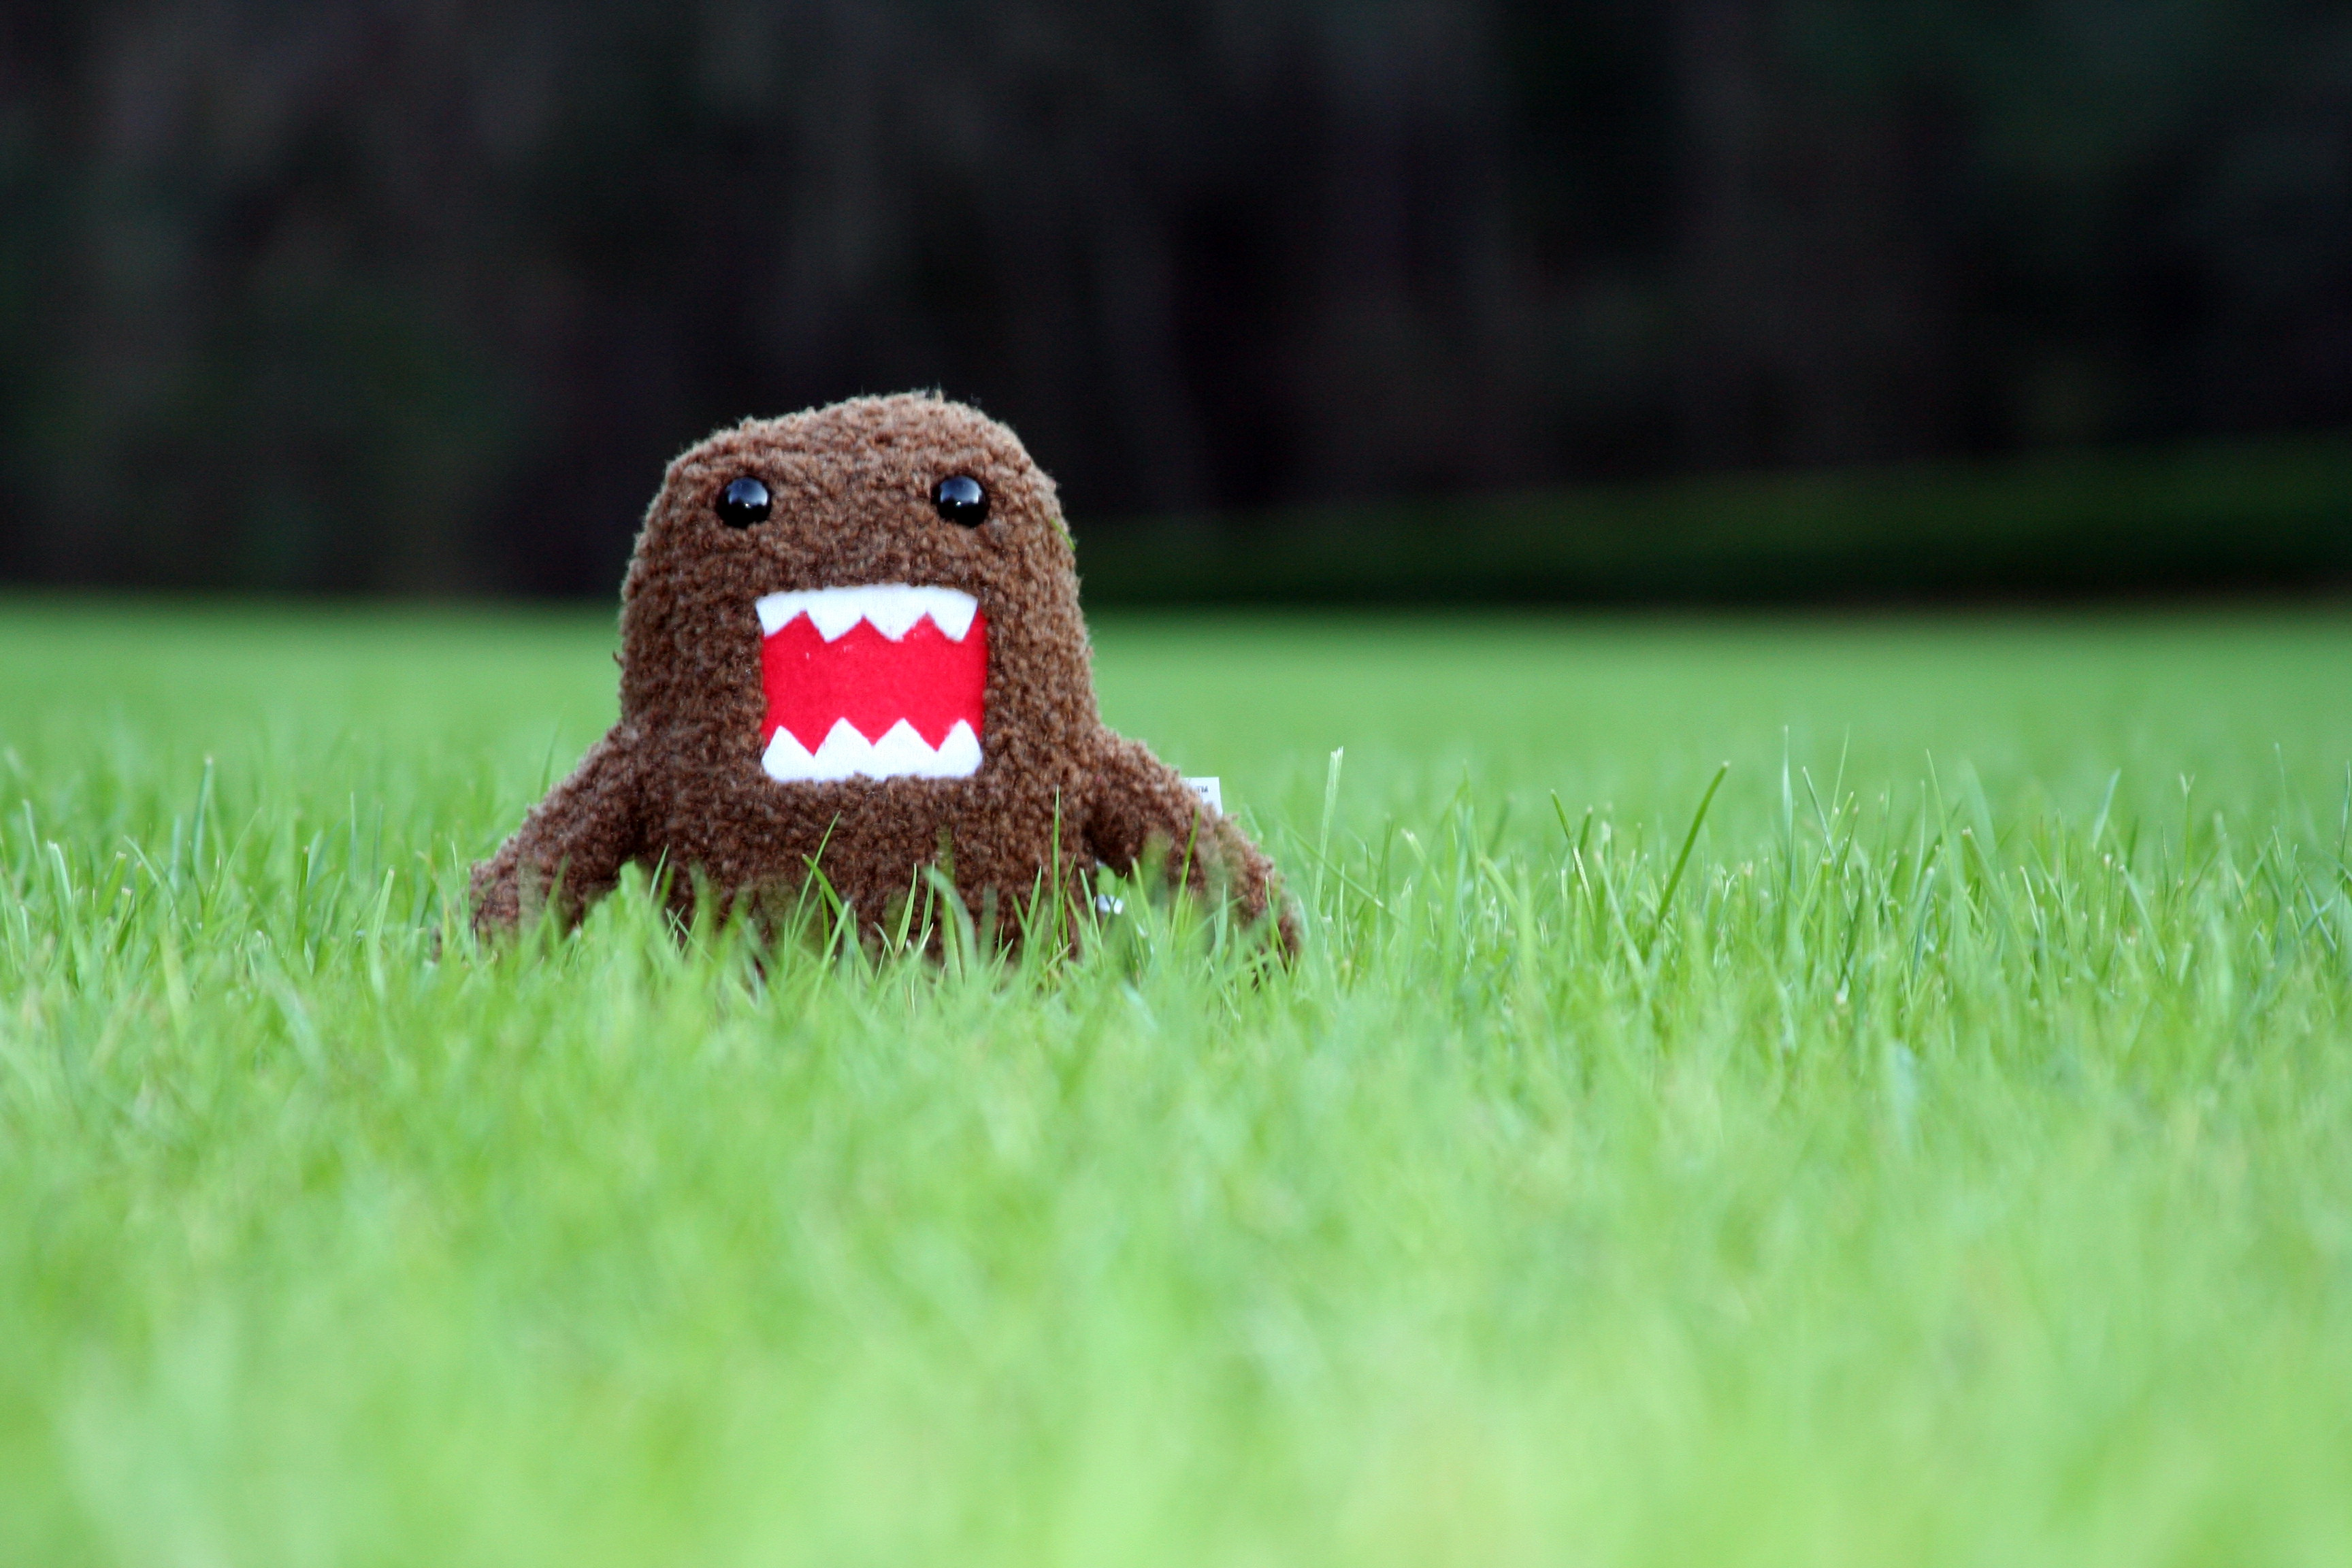 Cute Domo 34562304 121785 HD Wallpaper Res 3456x2304 DesktopAS 3456x2304